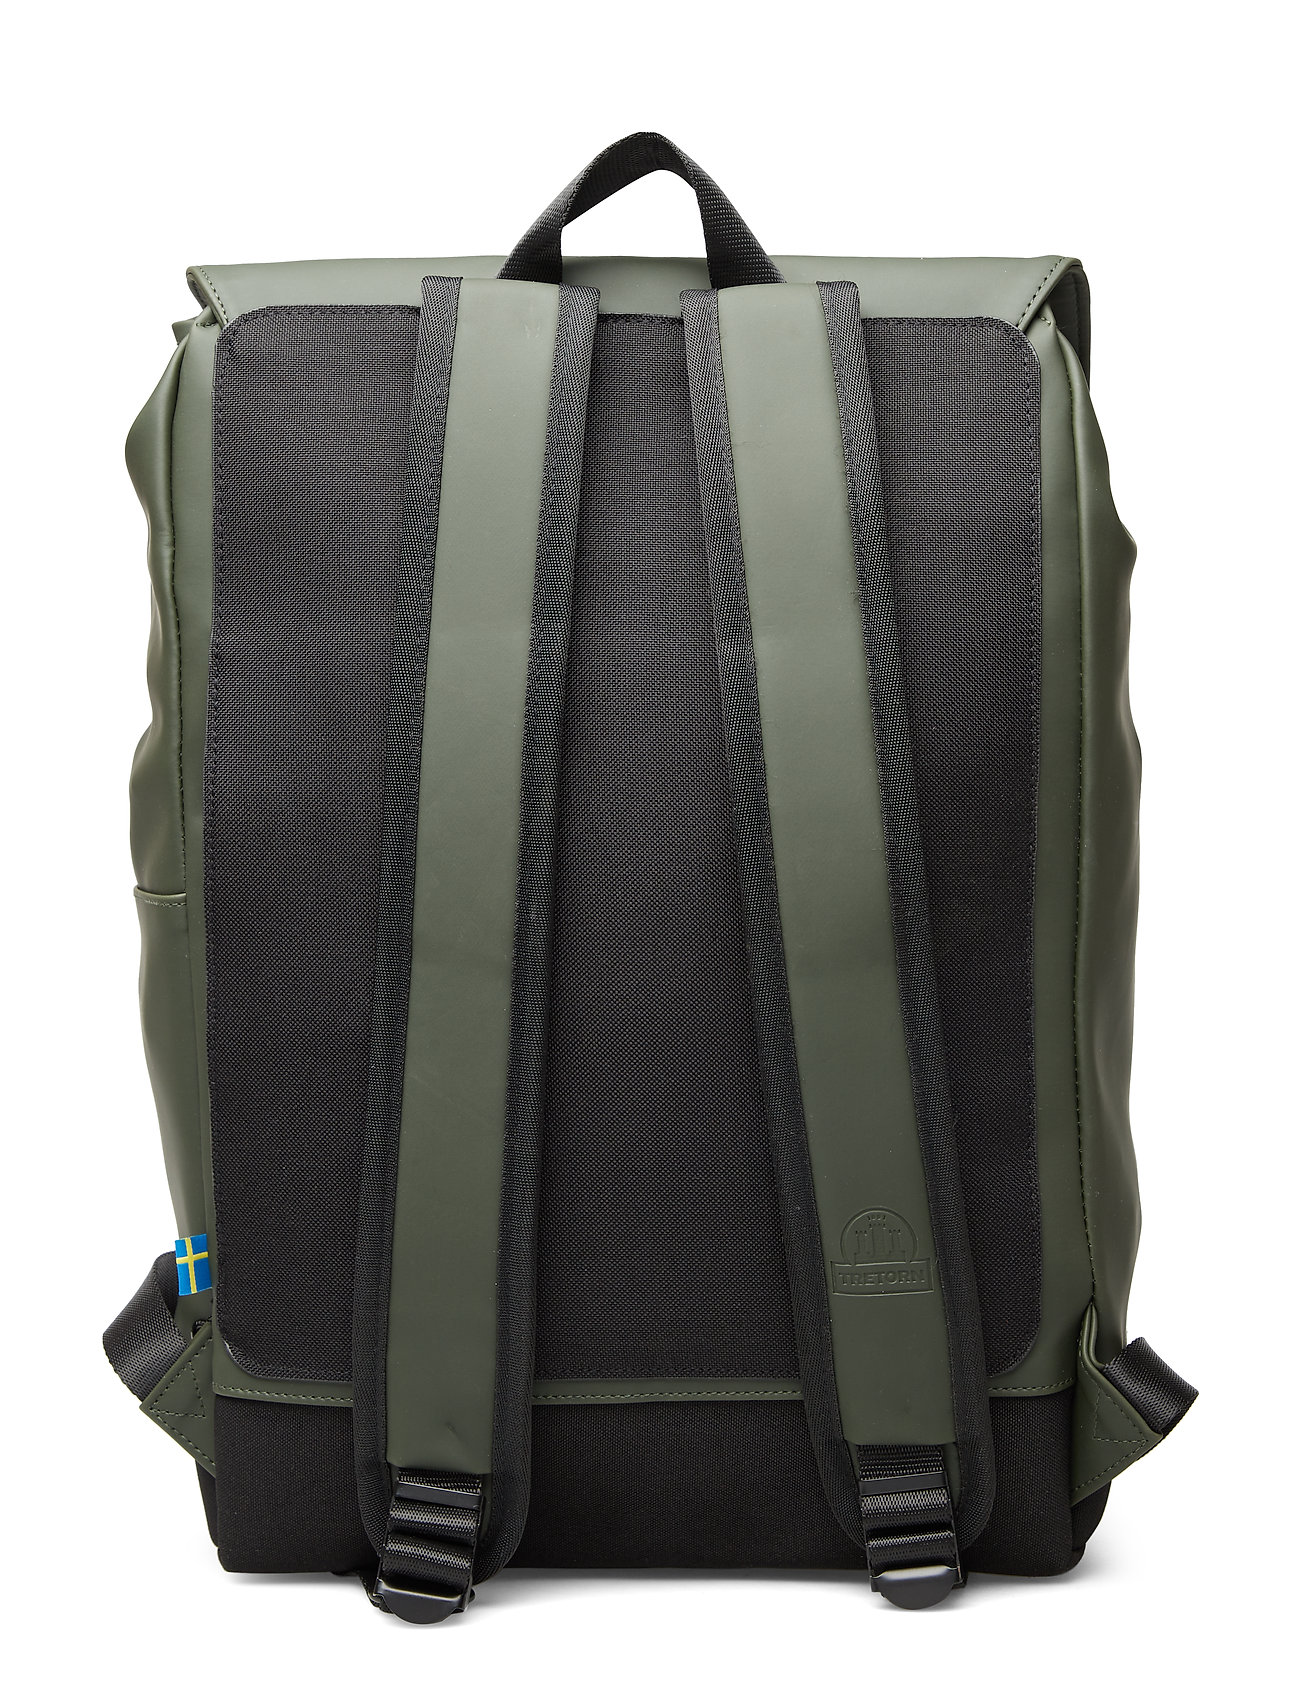 Wings Daypack067 GreeTretorn Daypack067 forest Wings j4Rq3L5A